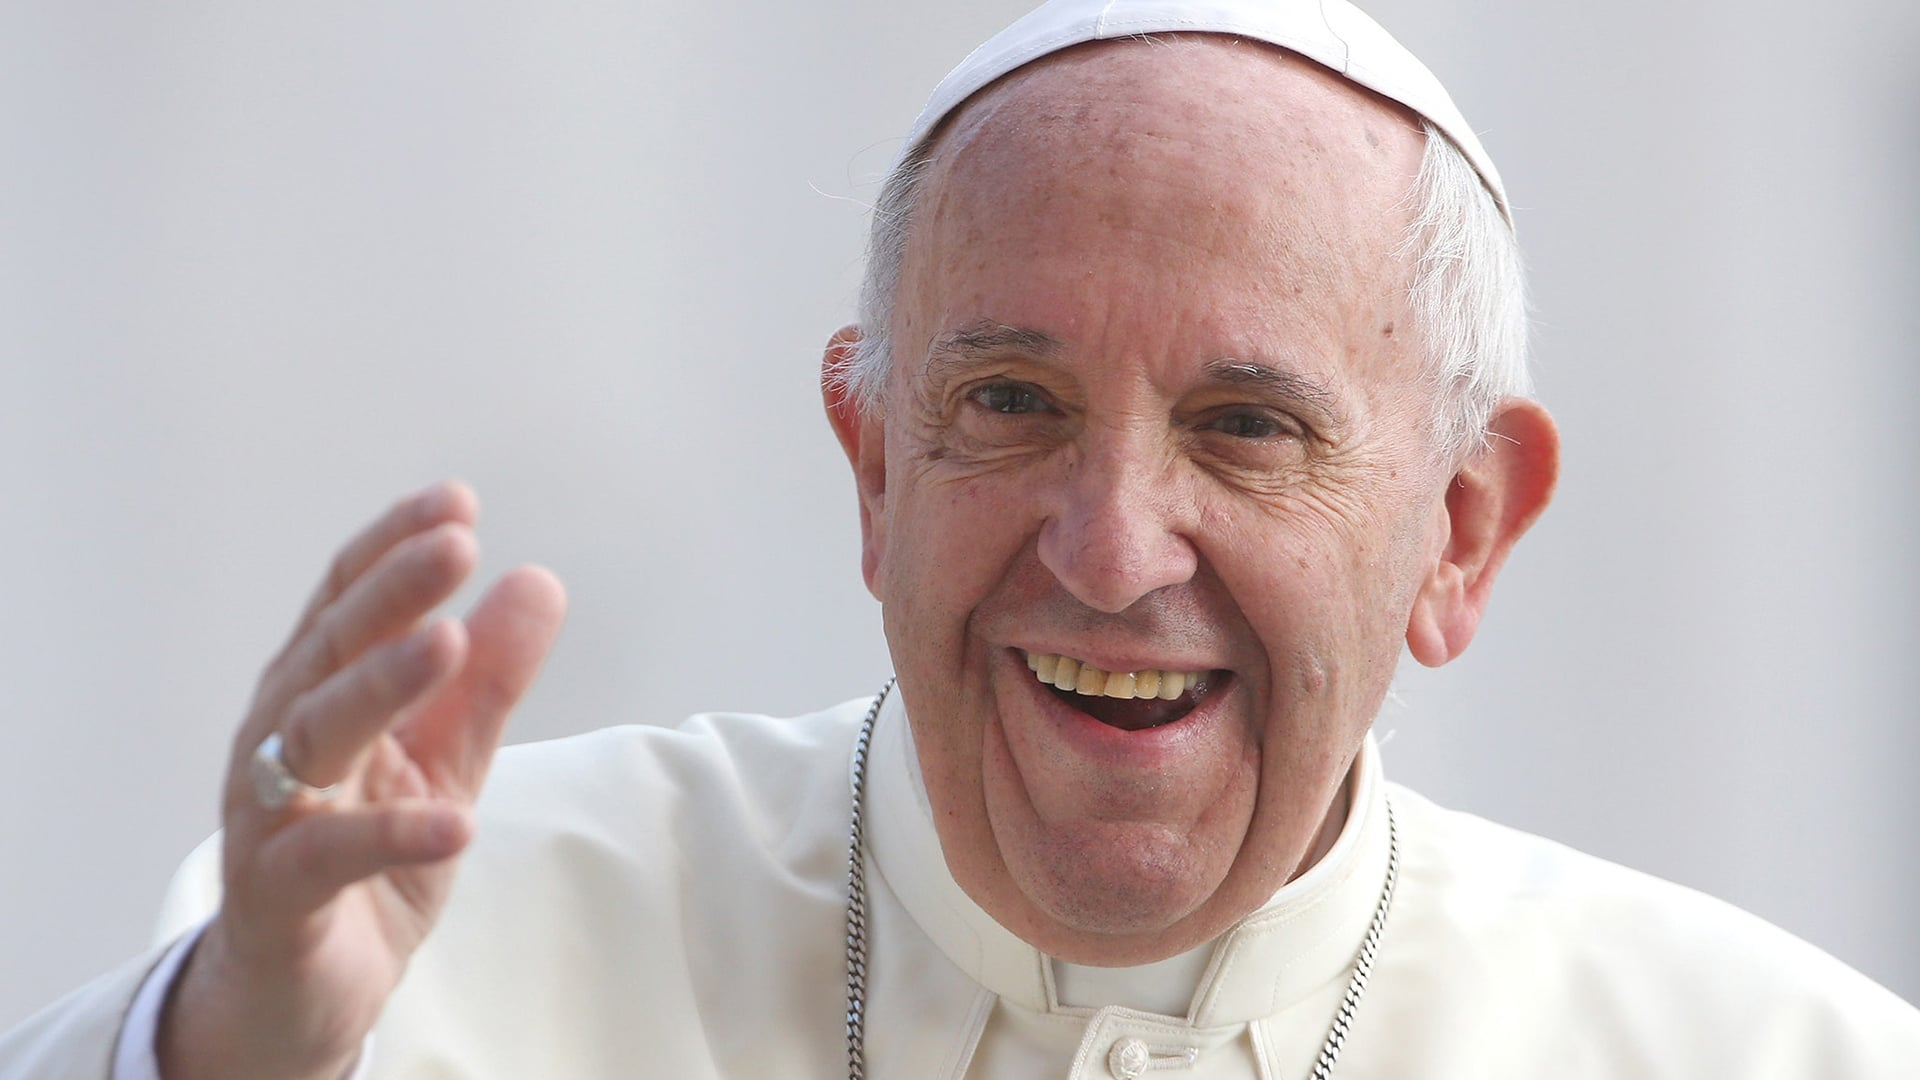 Mike Church Show-Pope Francis Joins Biden In Creating A Generation Of Worst Catholics In History